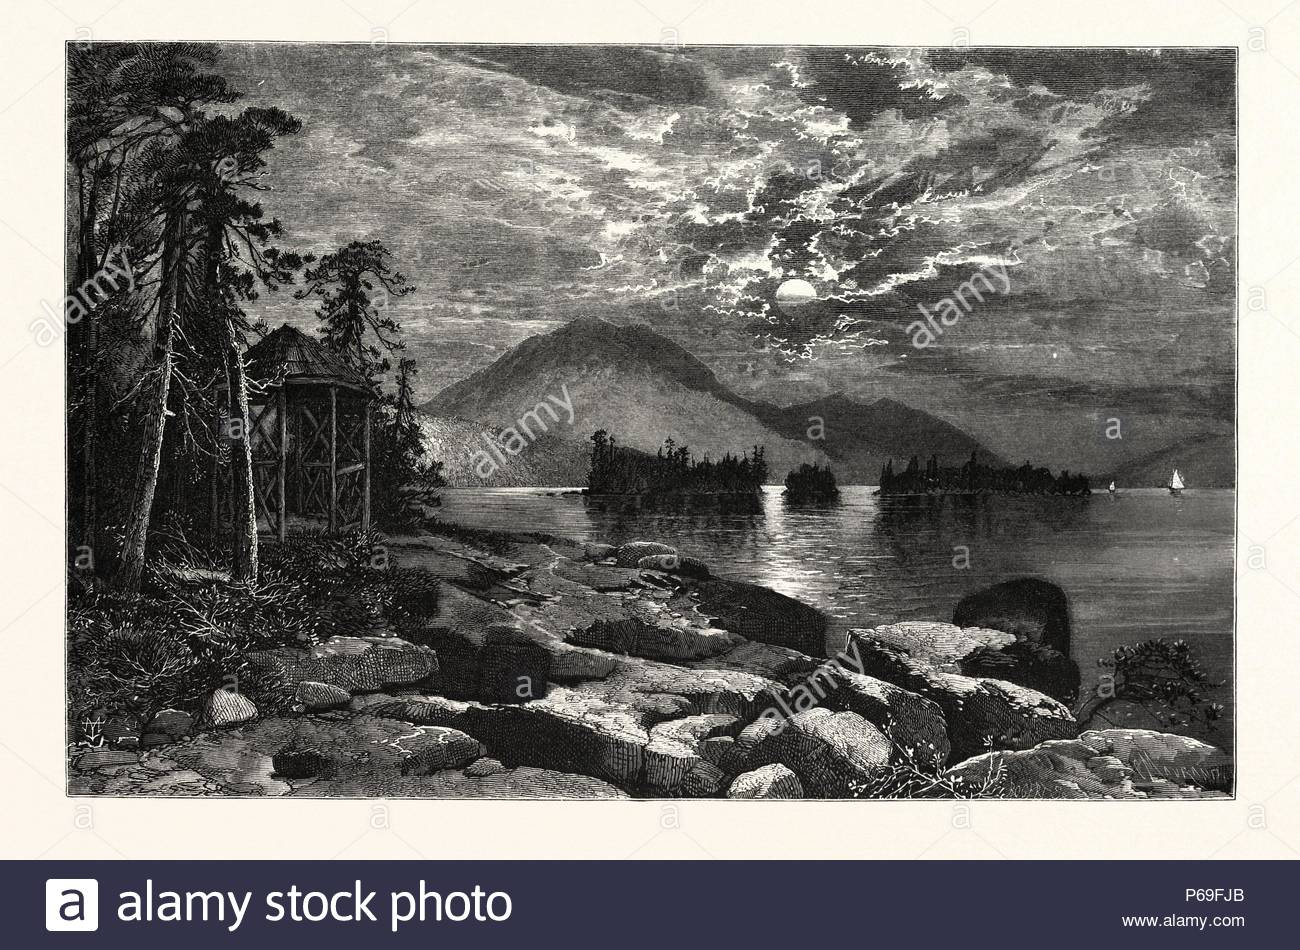 VIEW FROM FOURTEEN-MILE ISLAND, LAKE GEORGE. THOMAS MORAN, England was an American painter and printmaker of the Hudson River School in New York whose work often featured the Rocky Mountains. USA. - Stock Image